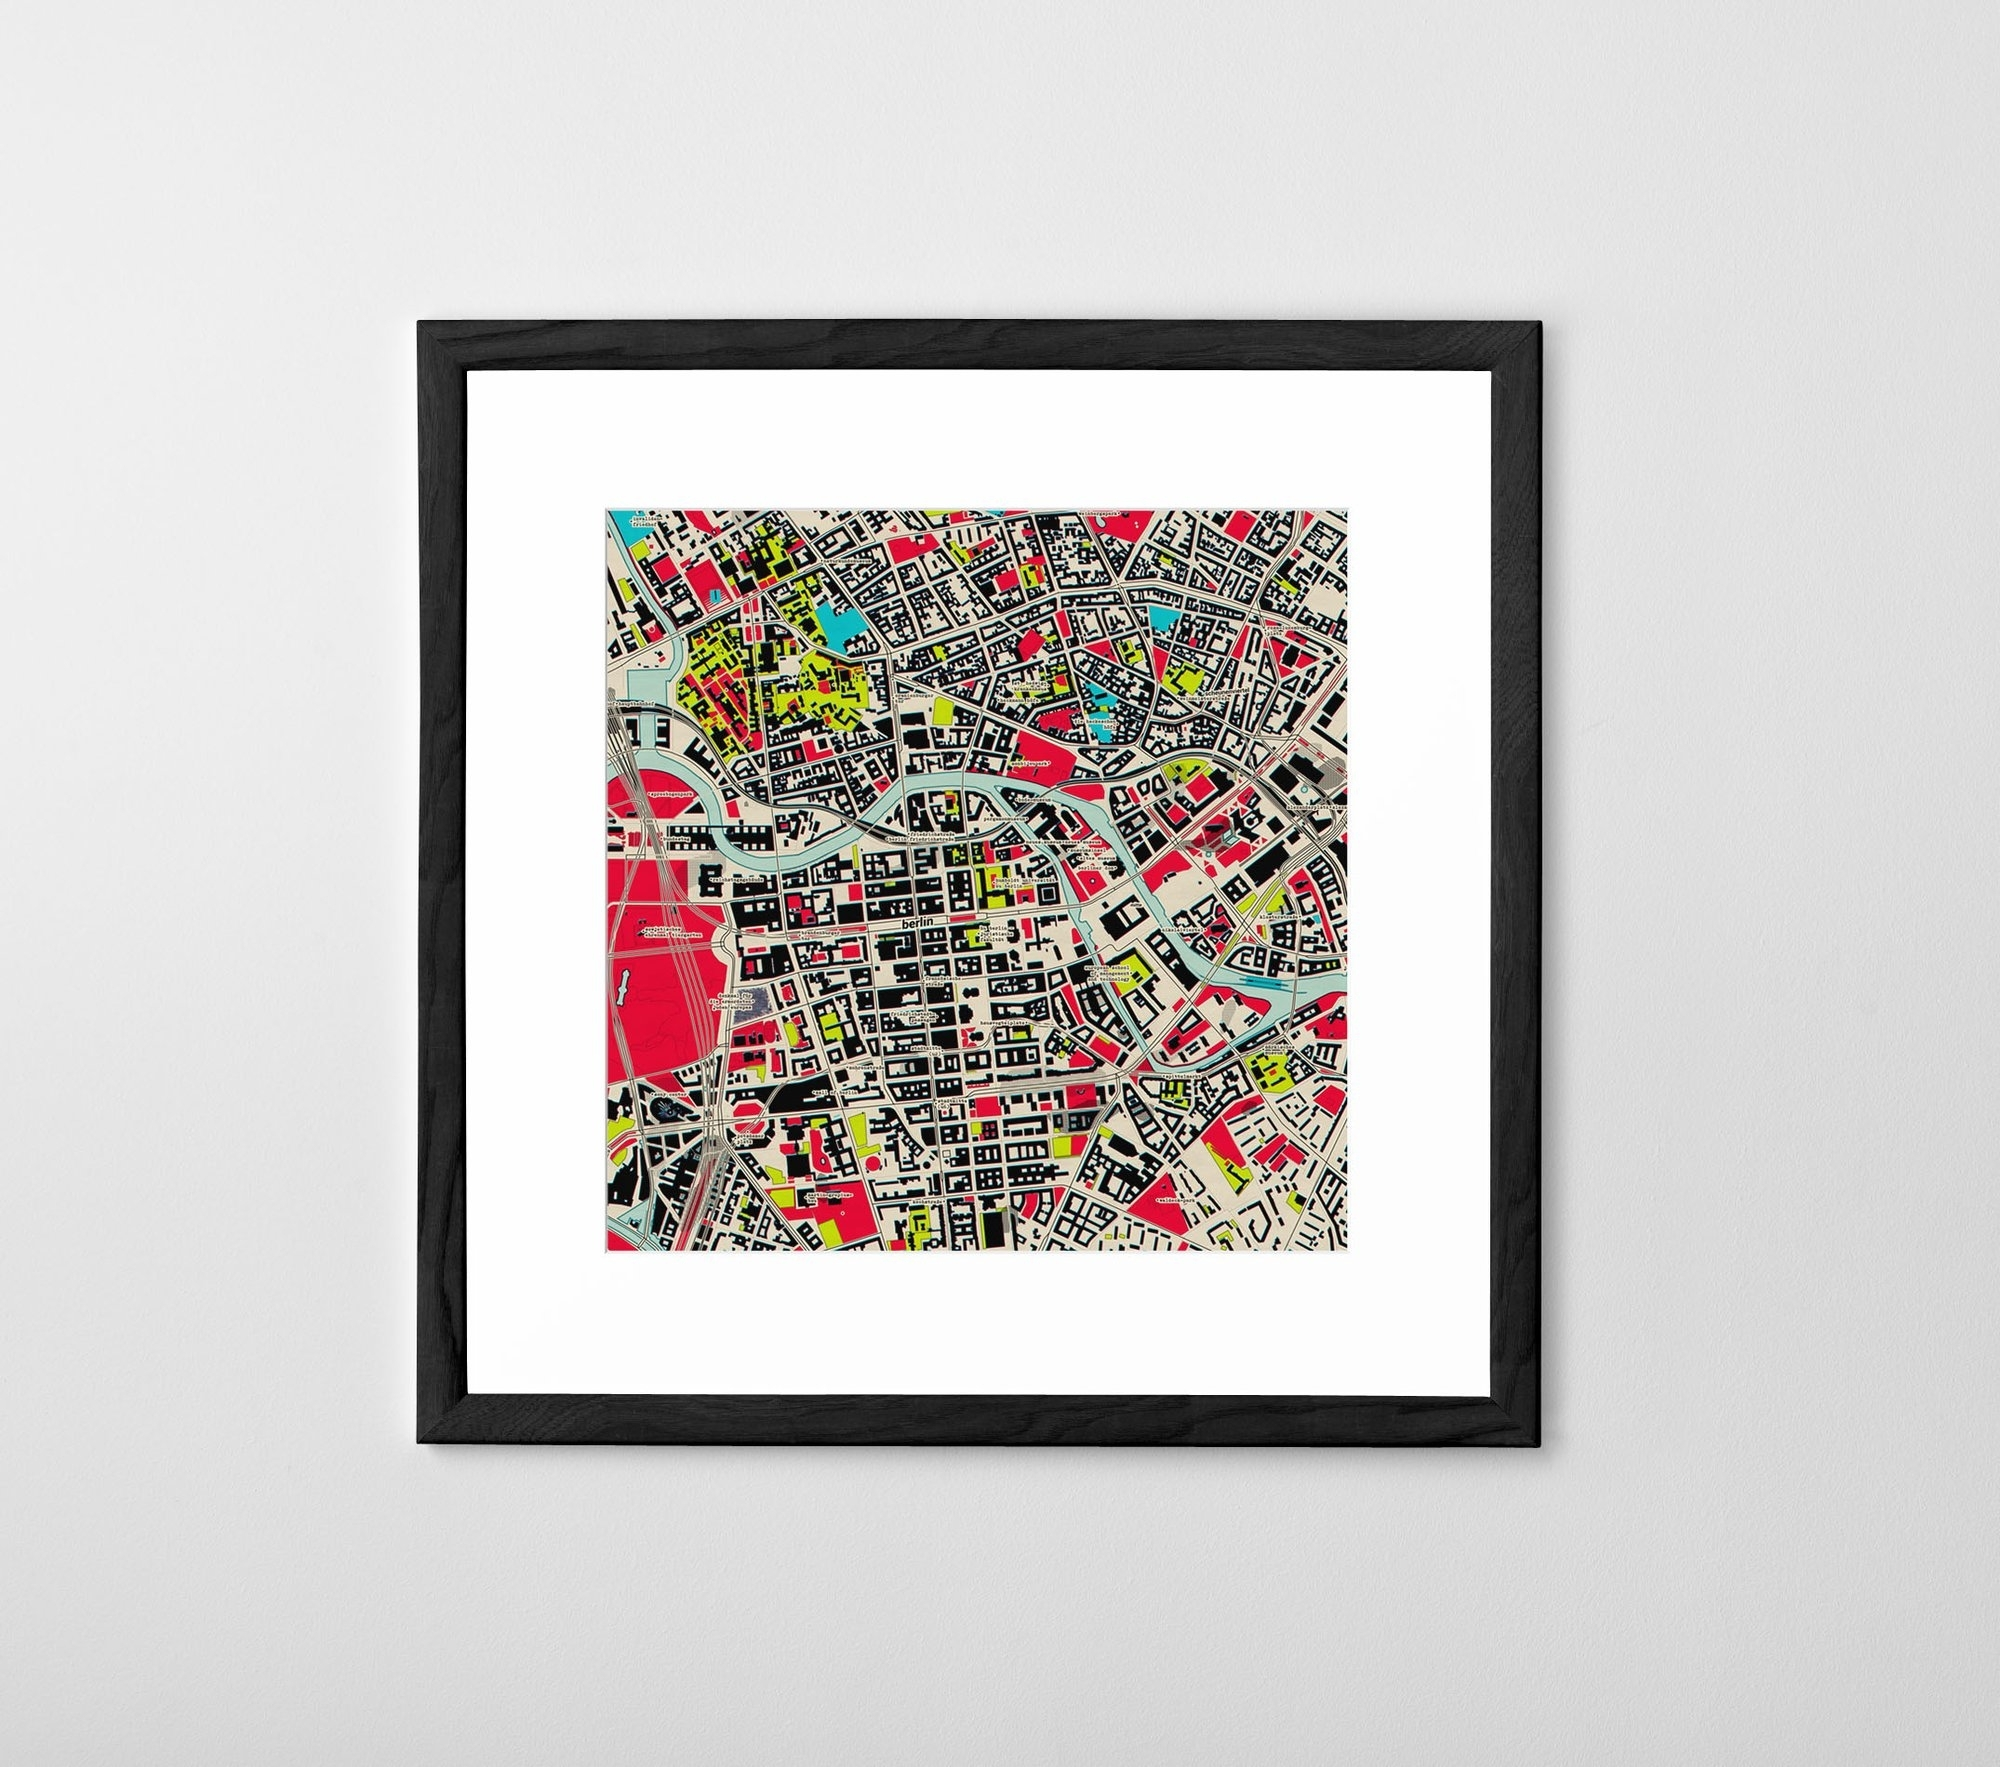 Personalised Map Print, Poster Or Canvas - Posterhaste regarding Map Wall Art Prints (Image 12 of 20)